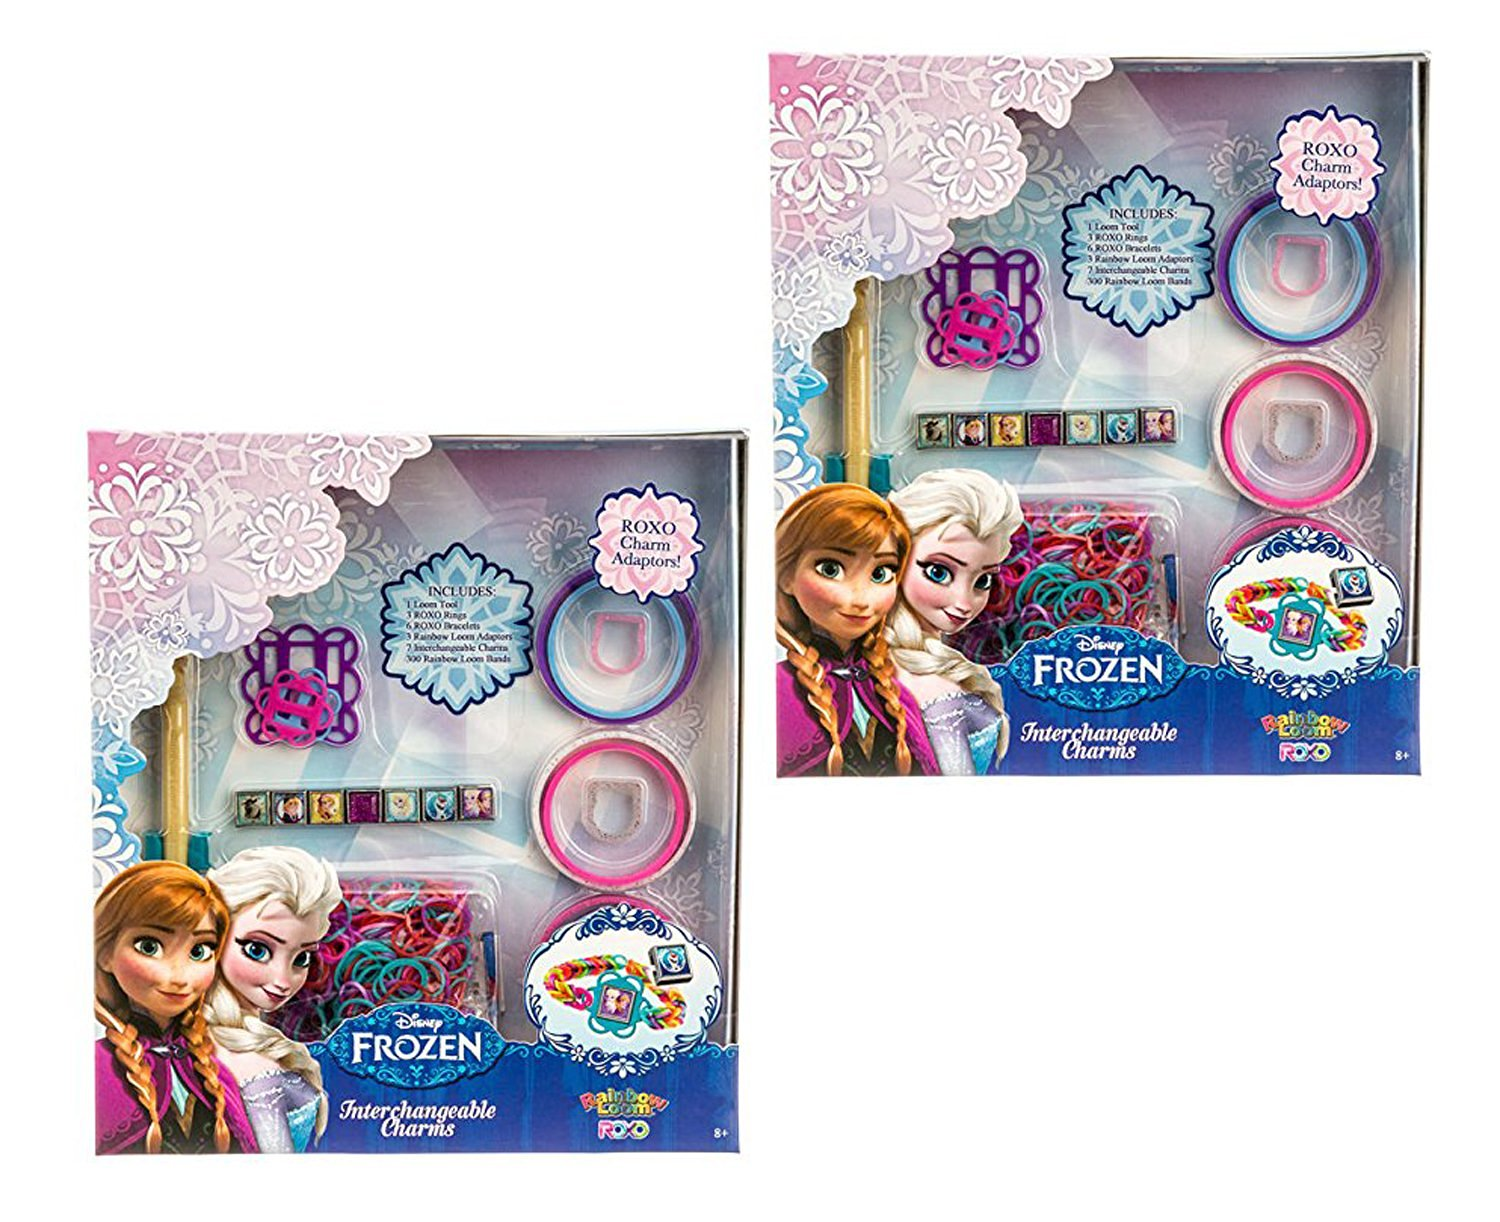 Set of 640 Disney Frozen Rainbow Loom Ultimate Bonus Pack with Rings, Bracelets and Extra Rainbow Loomer, Extra Bands and Charm Adapters.